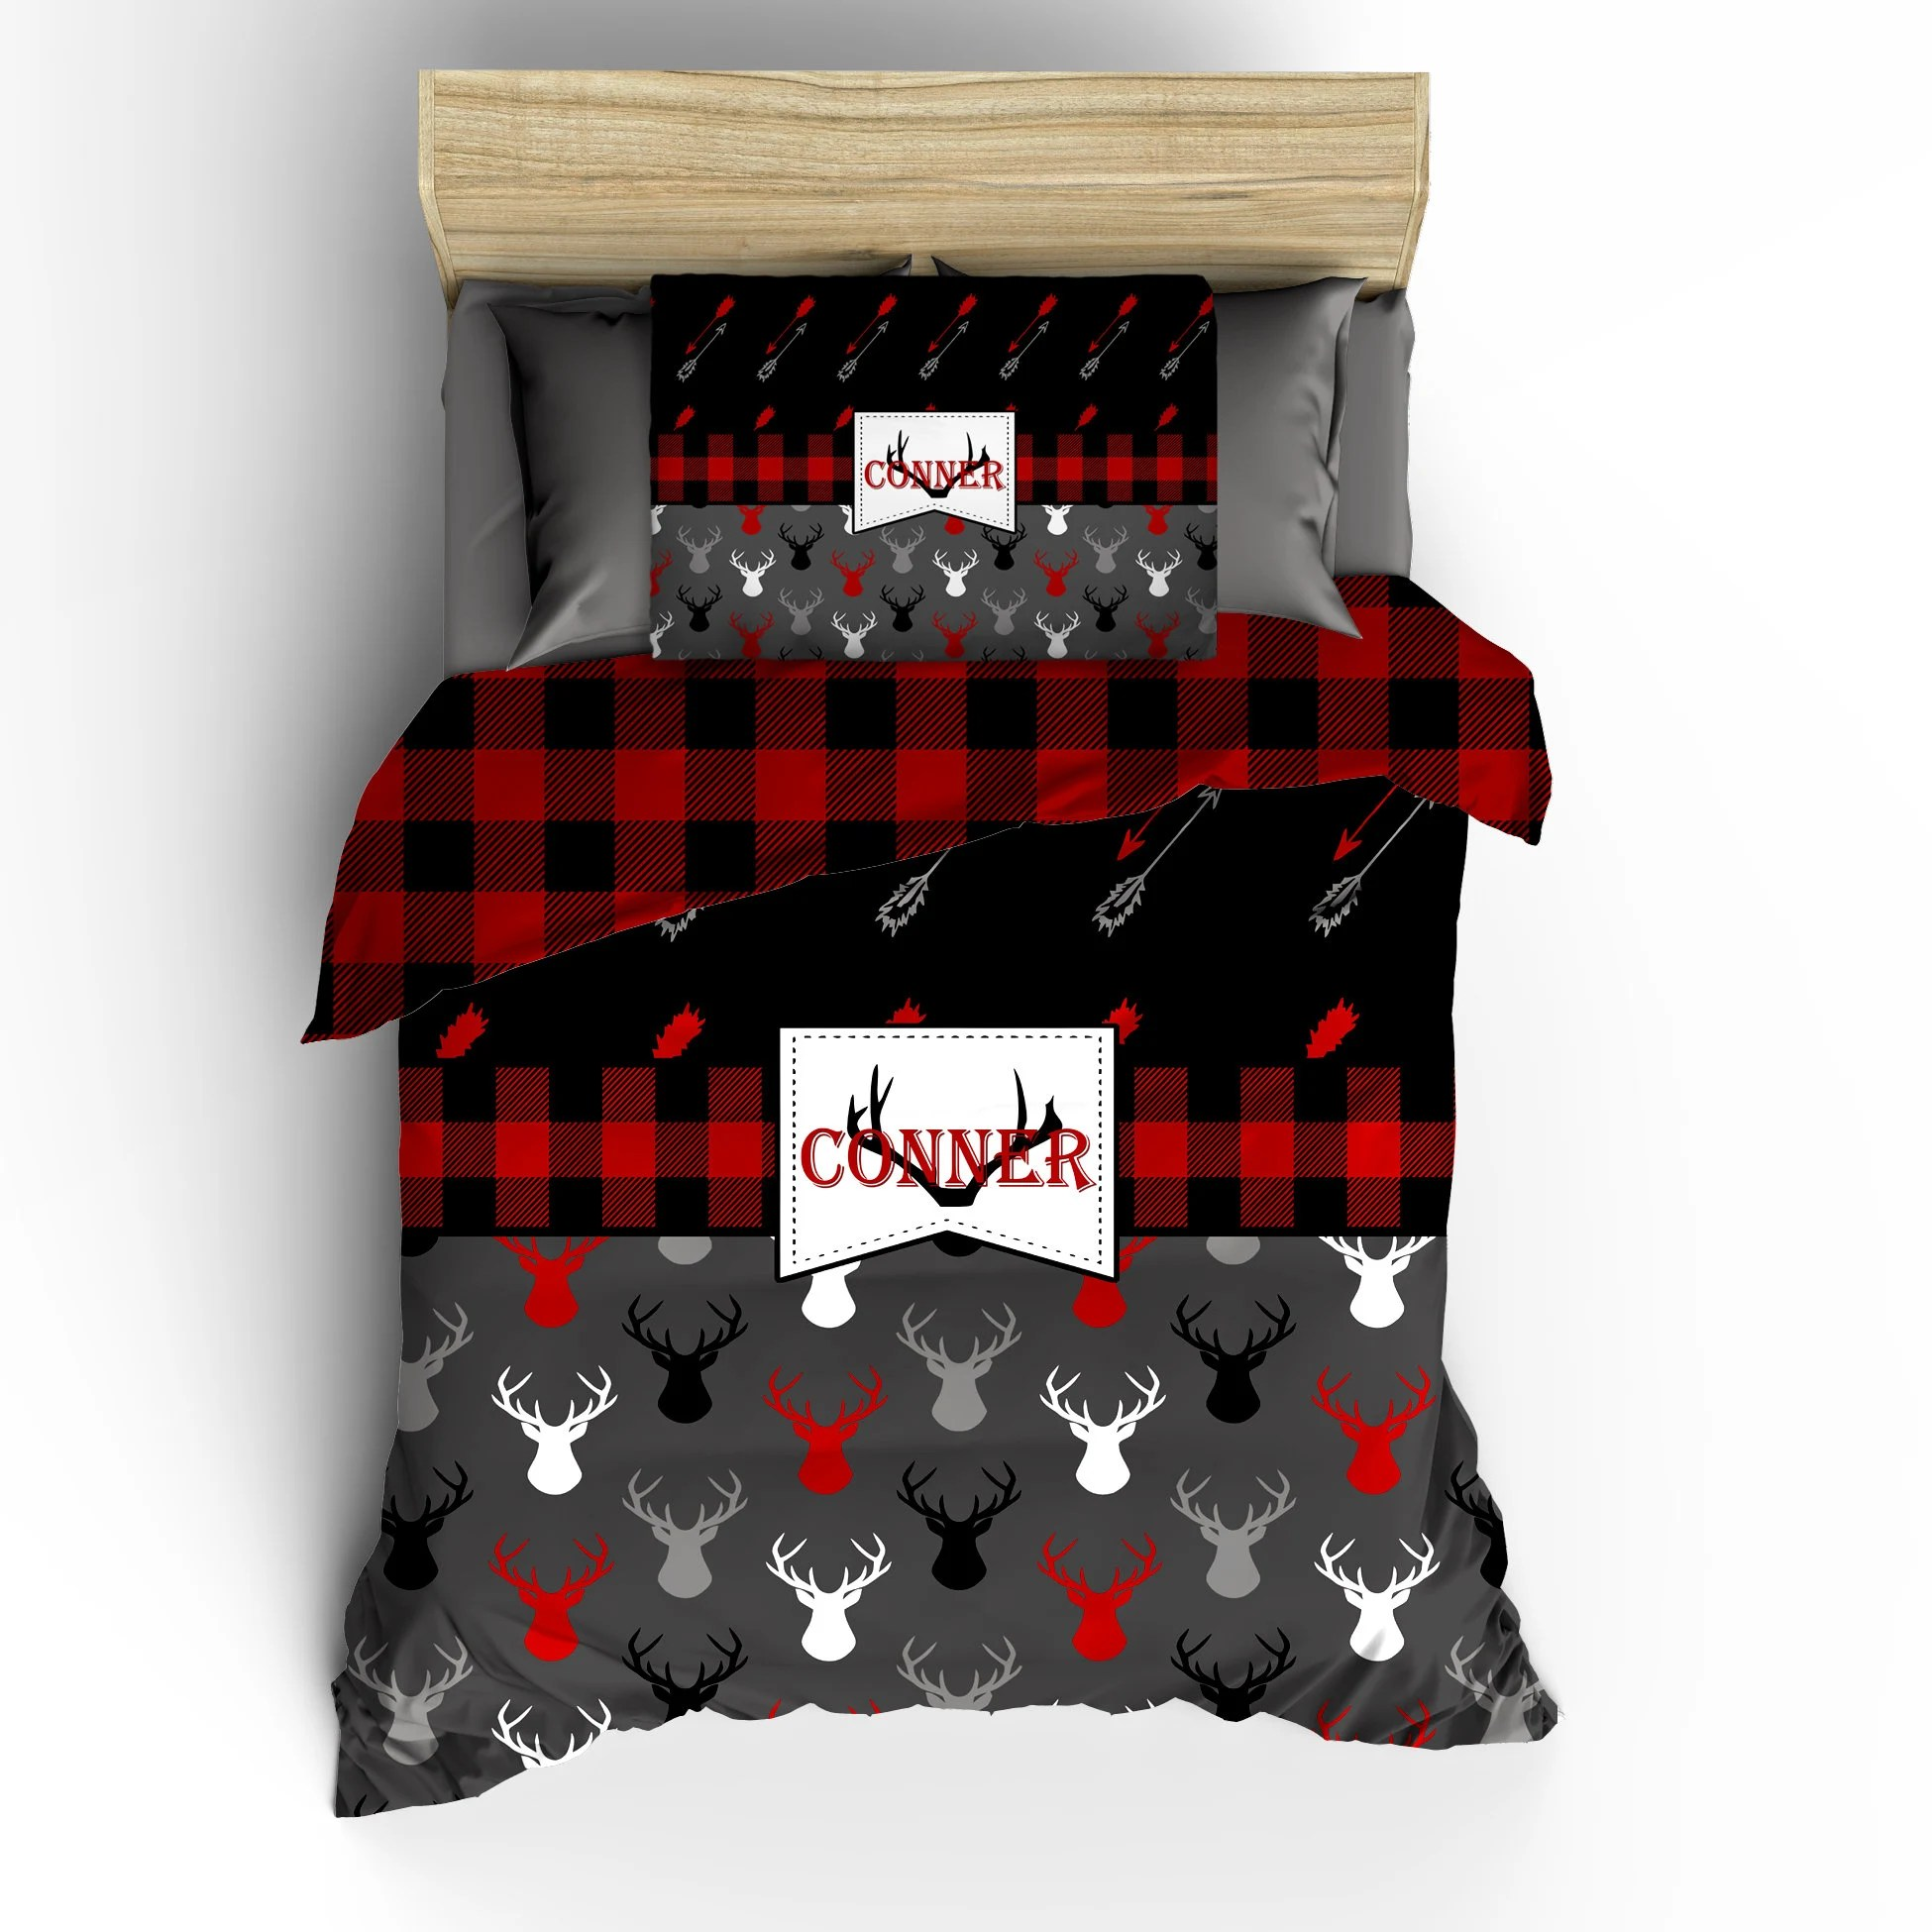 custom red black buffalo plaid and deer heads reversible comforter bedding polyester sateen tw full queen or king size